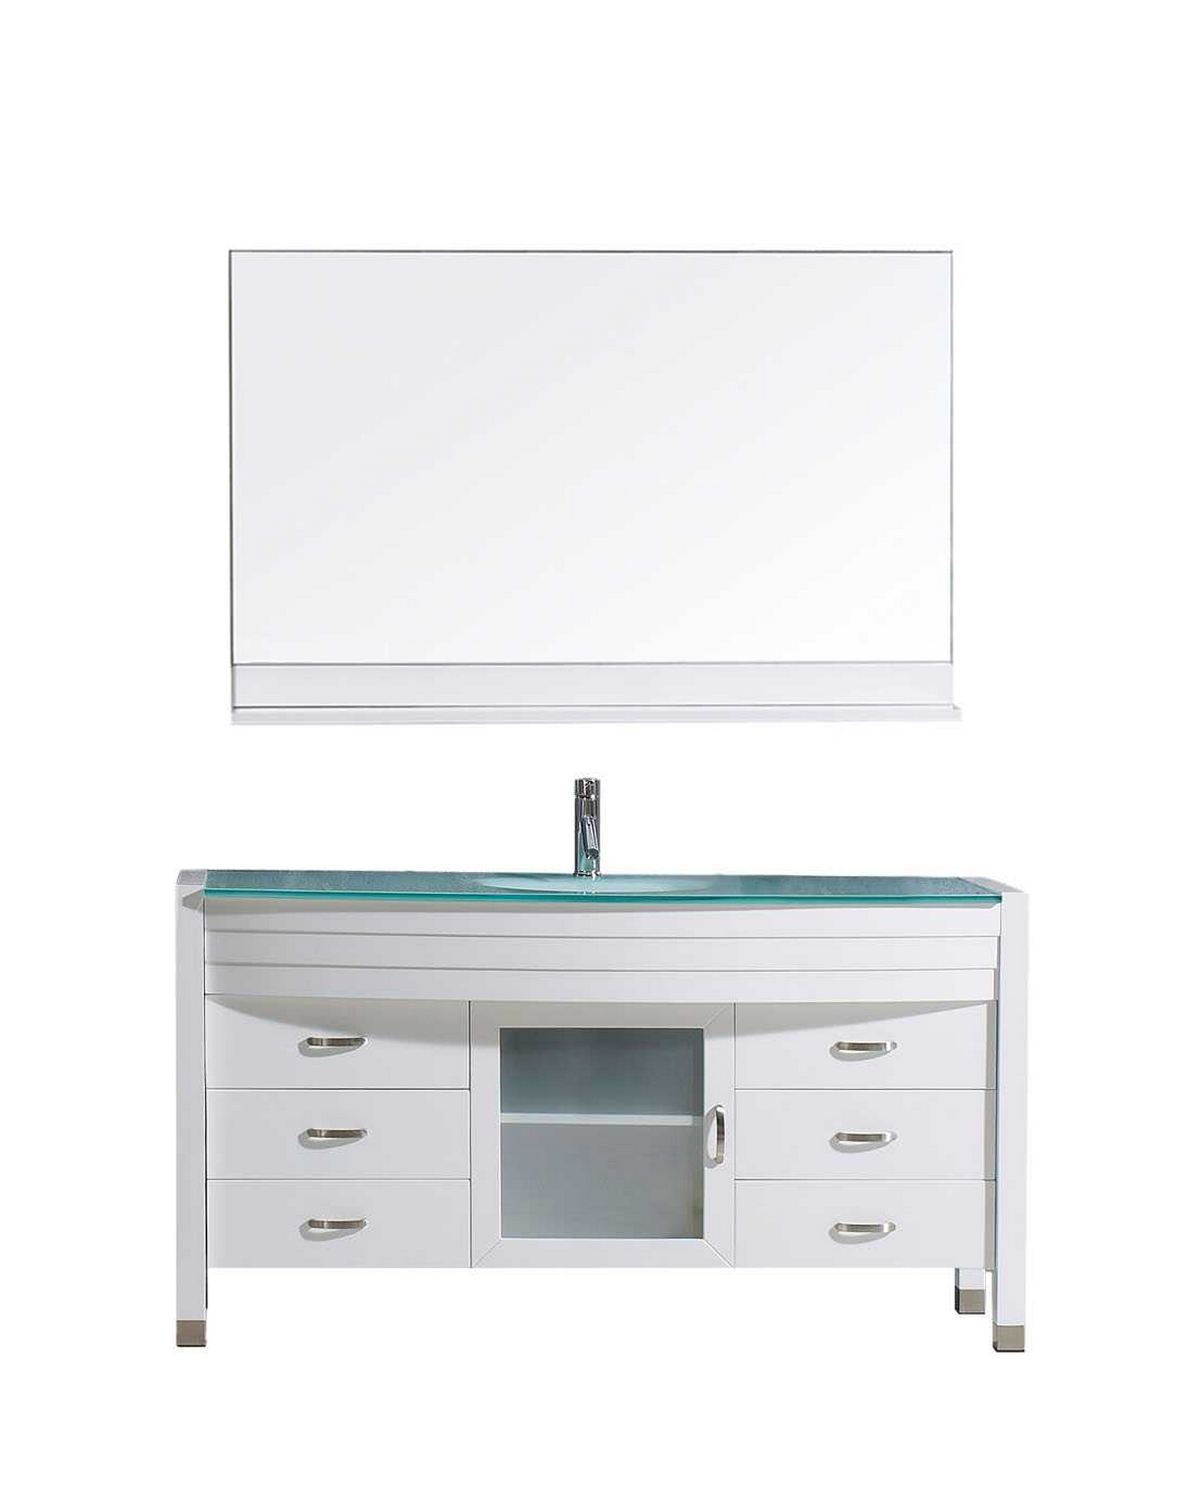 usa ava 55 single bathroom vanity cabinet set in white tempered glass